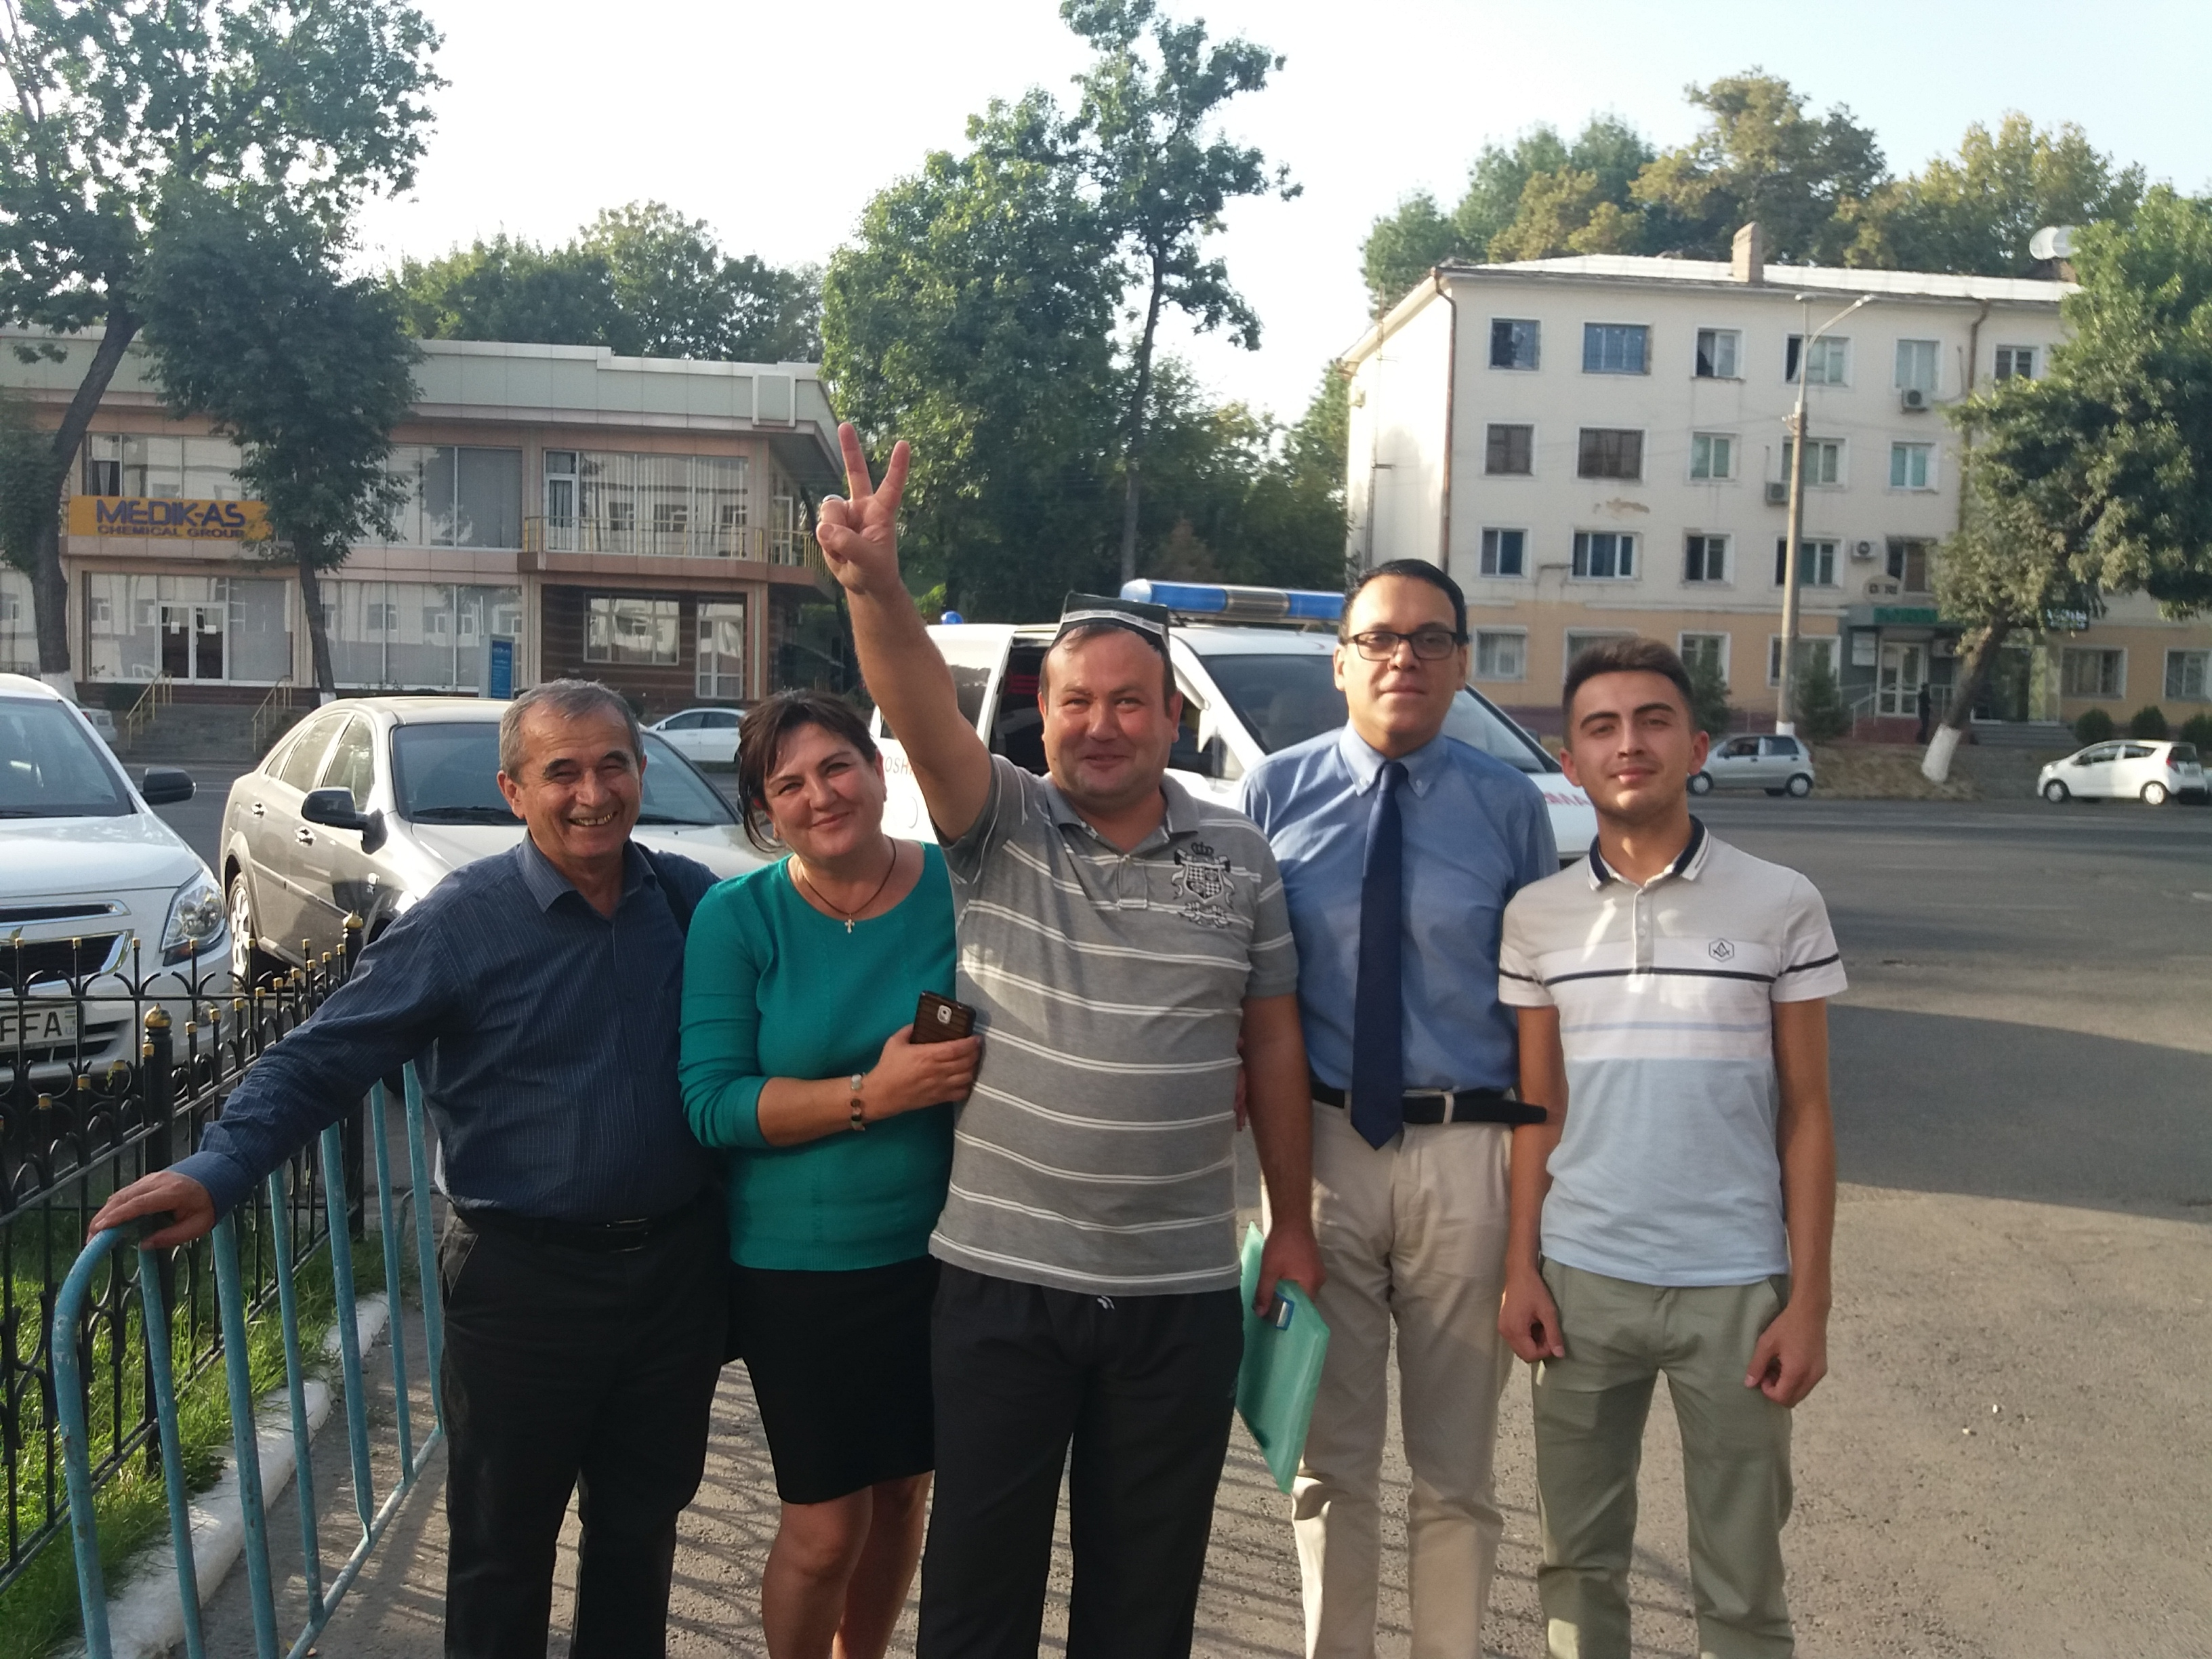 Kubatin, center, posing after his release with his wife, Klara Sakharova, activists Azgam Turgunov, left, and Anvar Nazirov, second right, and Kubatin's student, Andrei Otabek. (Photo: Courtesy photo)